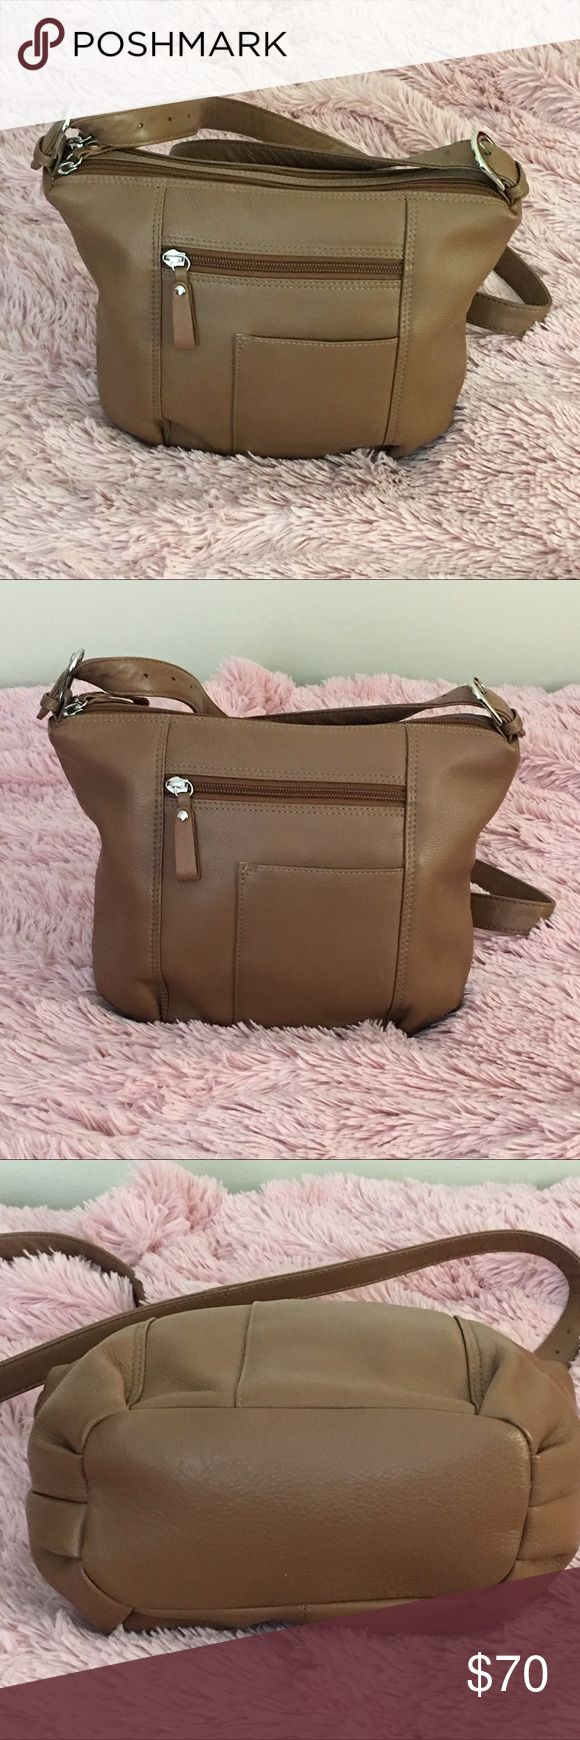 ili New York genuine leather Crossbody bag 💼 Like new use few times perfect for traveling so soft lather 3 Big bucketswith zipper and 2 wallet holder and cell phone buckets feel free to make offer ili nwe york Bags Crossbody Bags